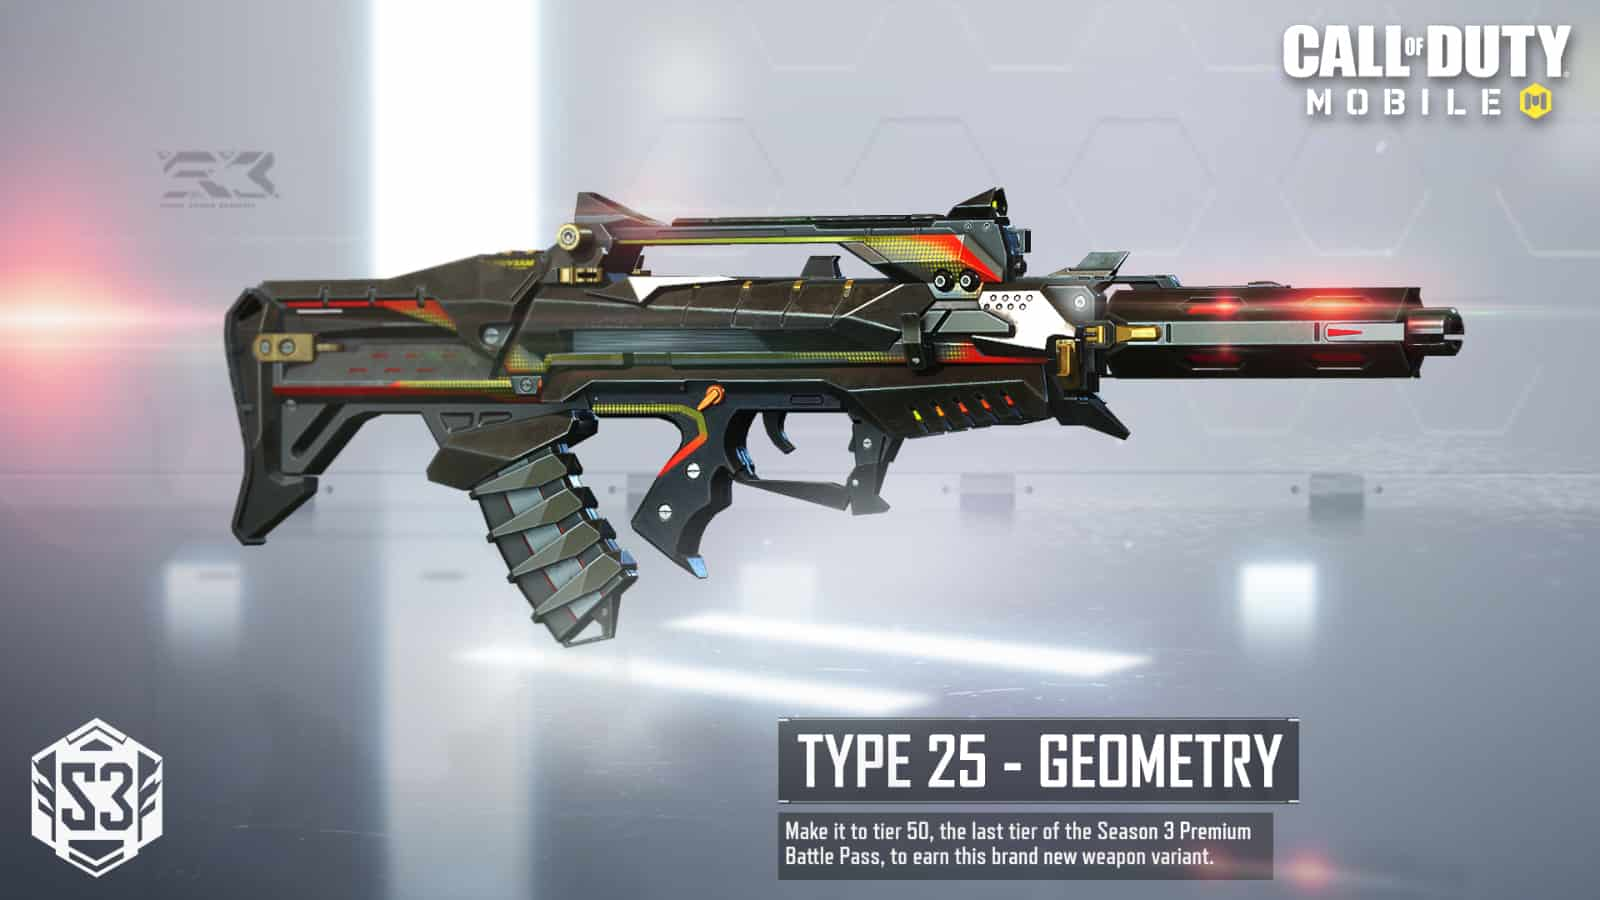 Call of Duty Mobile Type 25 Geometry